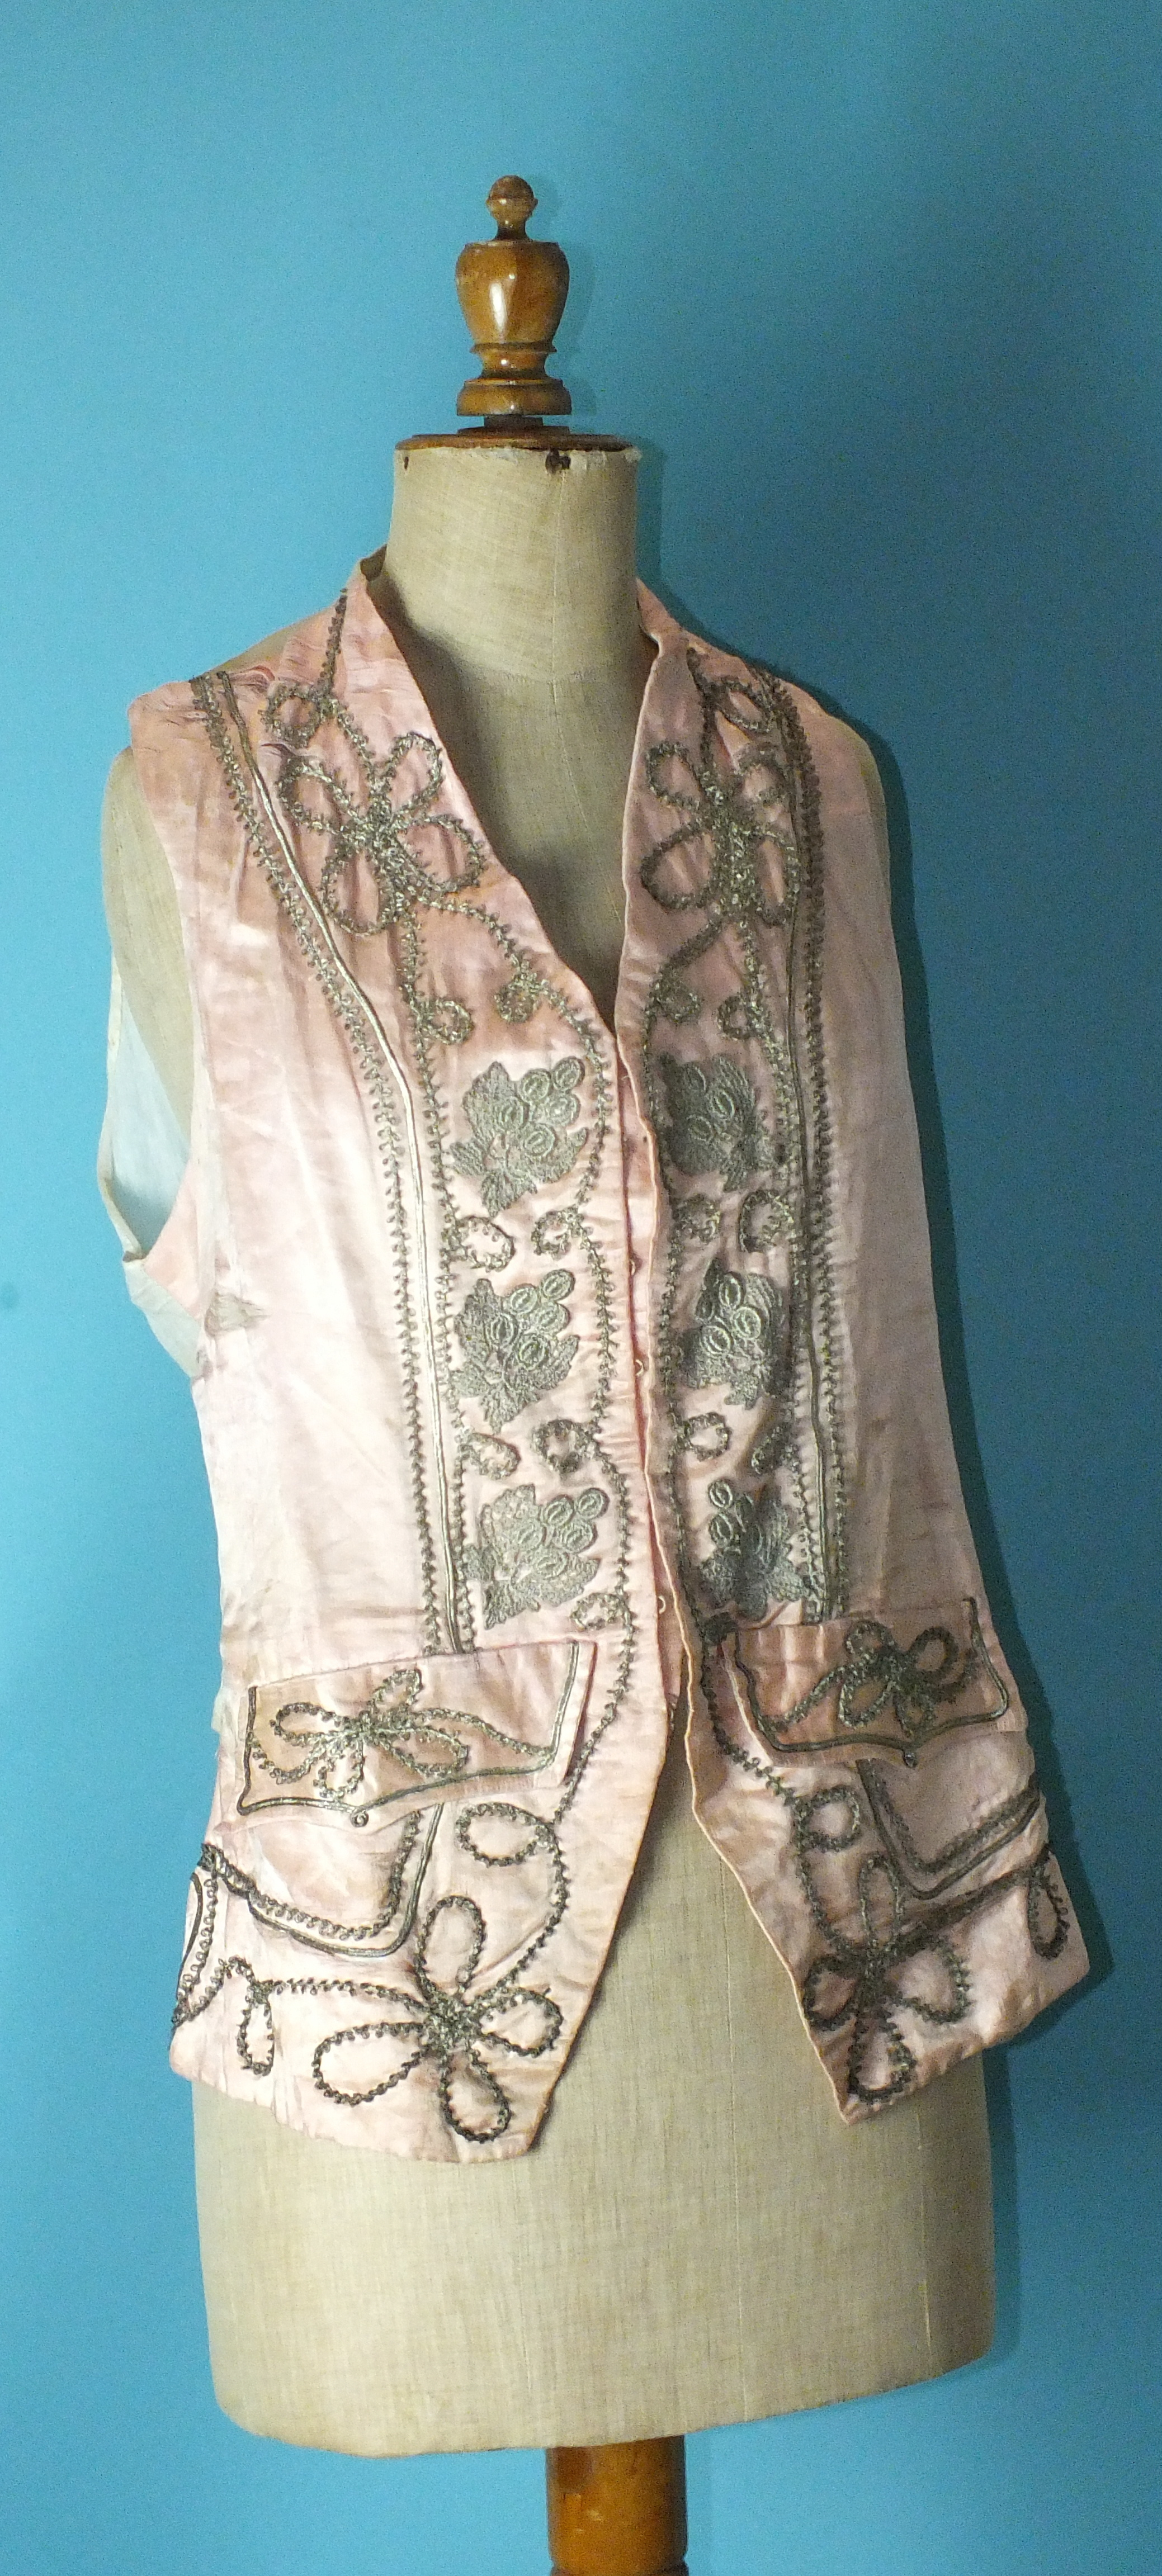 A late-18th century pale pink silk waistcoat, the front panels with applied silver lace and braid, - Image 5 of 5